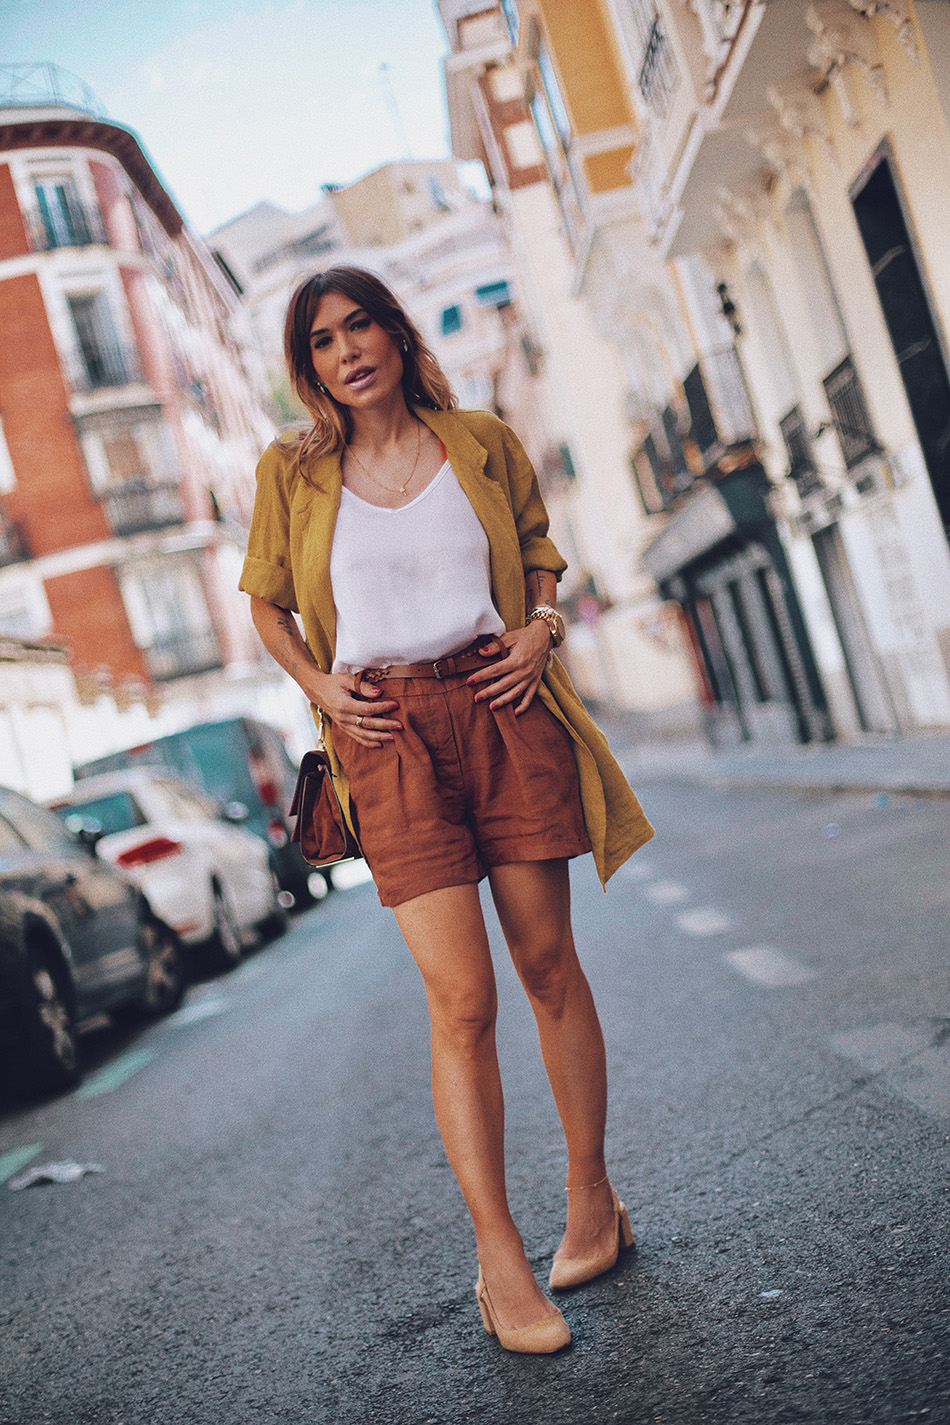 Bárbara Crespo streetstyle. Top: Moitié Shop. Blazer: Moitié Shop. Shorts: Moitié Shop. Watch / Reloj: Michael Kors. Necklace / Collar: Moitié Shop. Ring / Anillo: Kiabi. Bag / Bolso: Zara